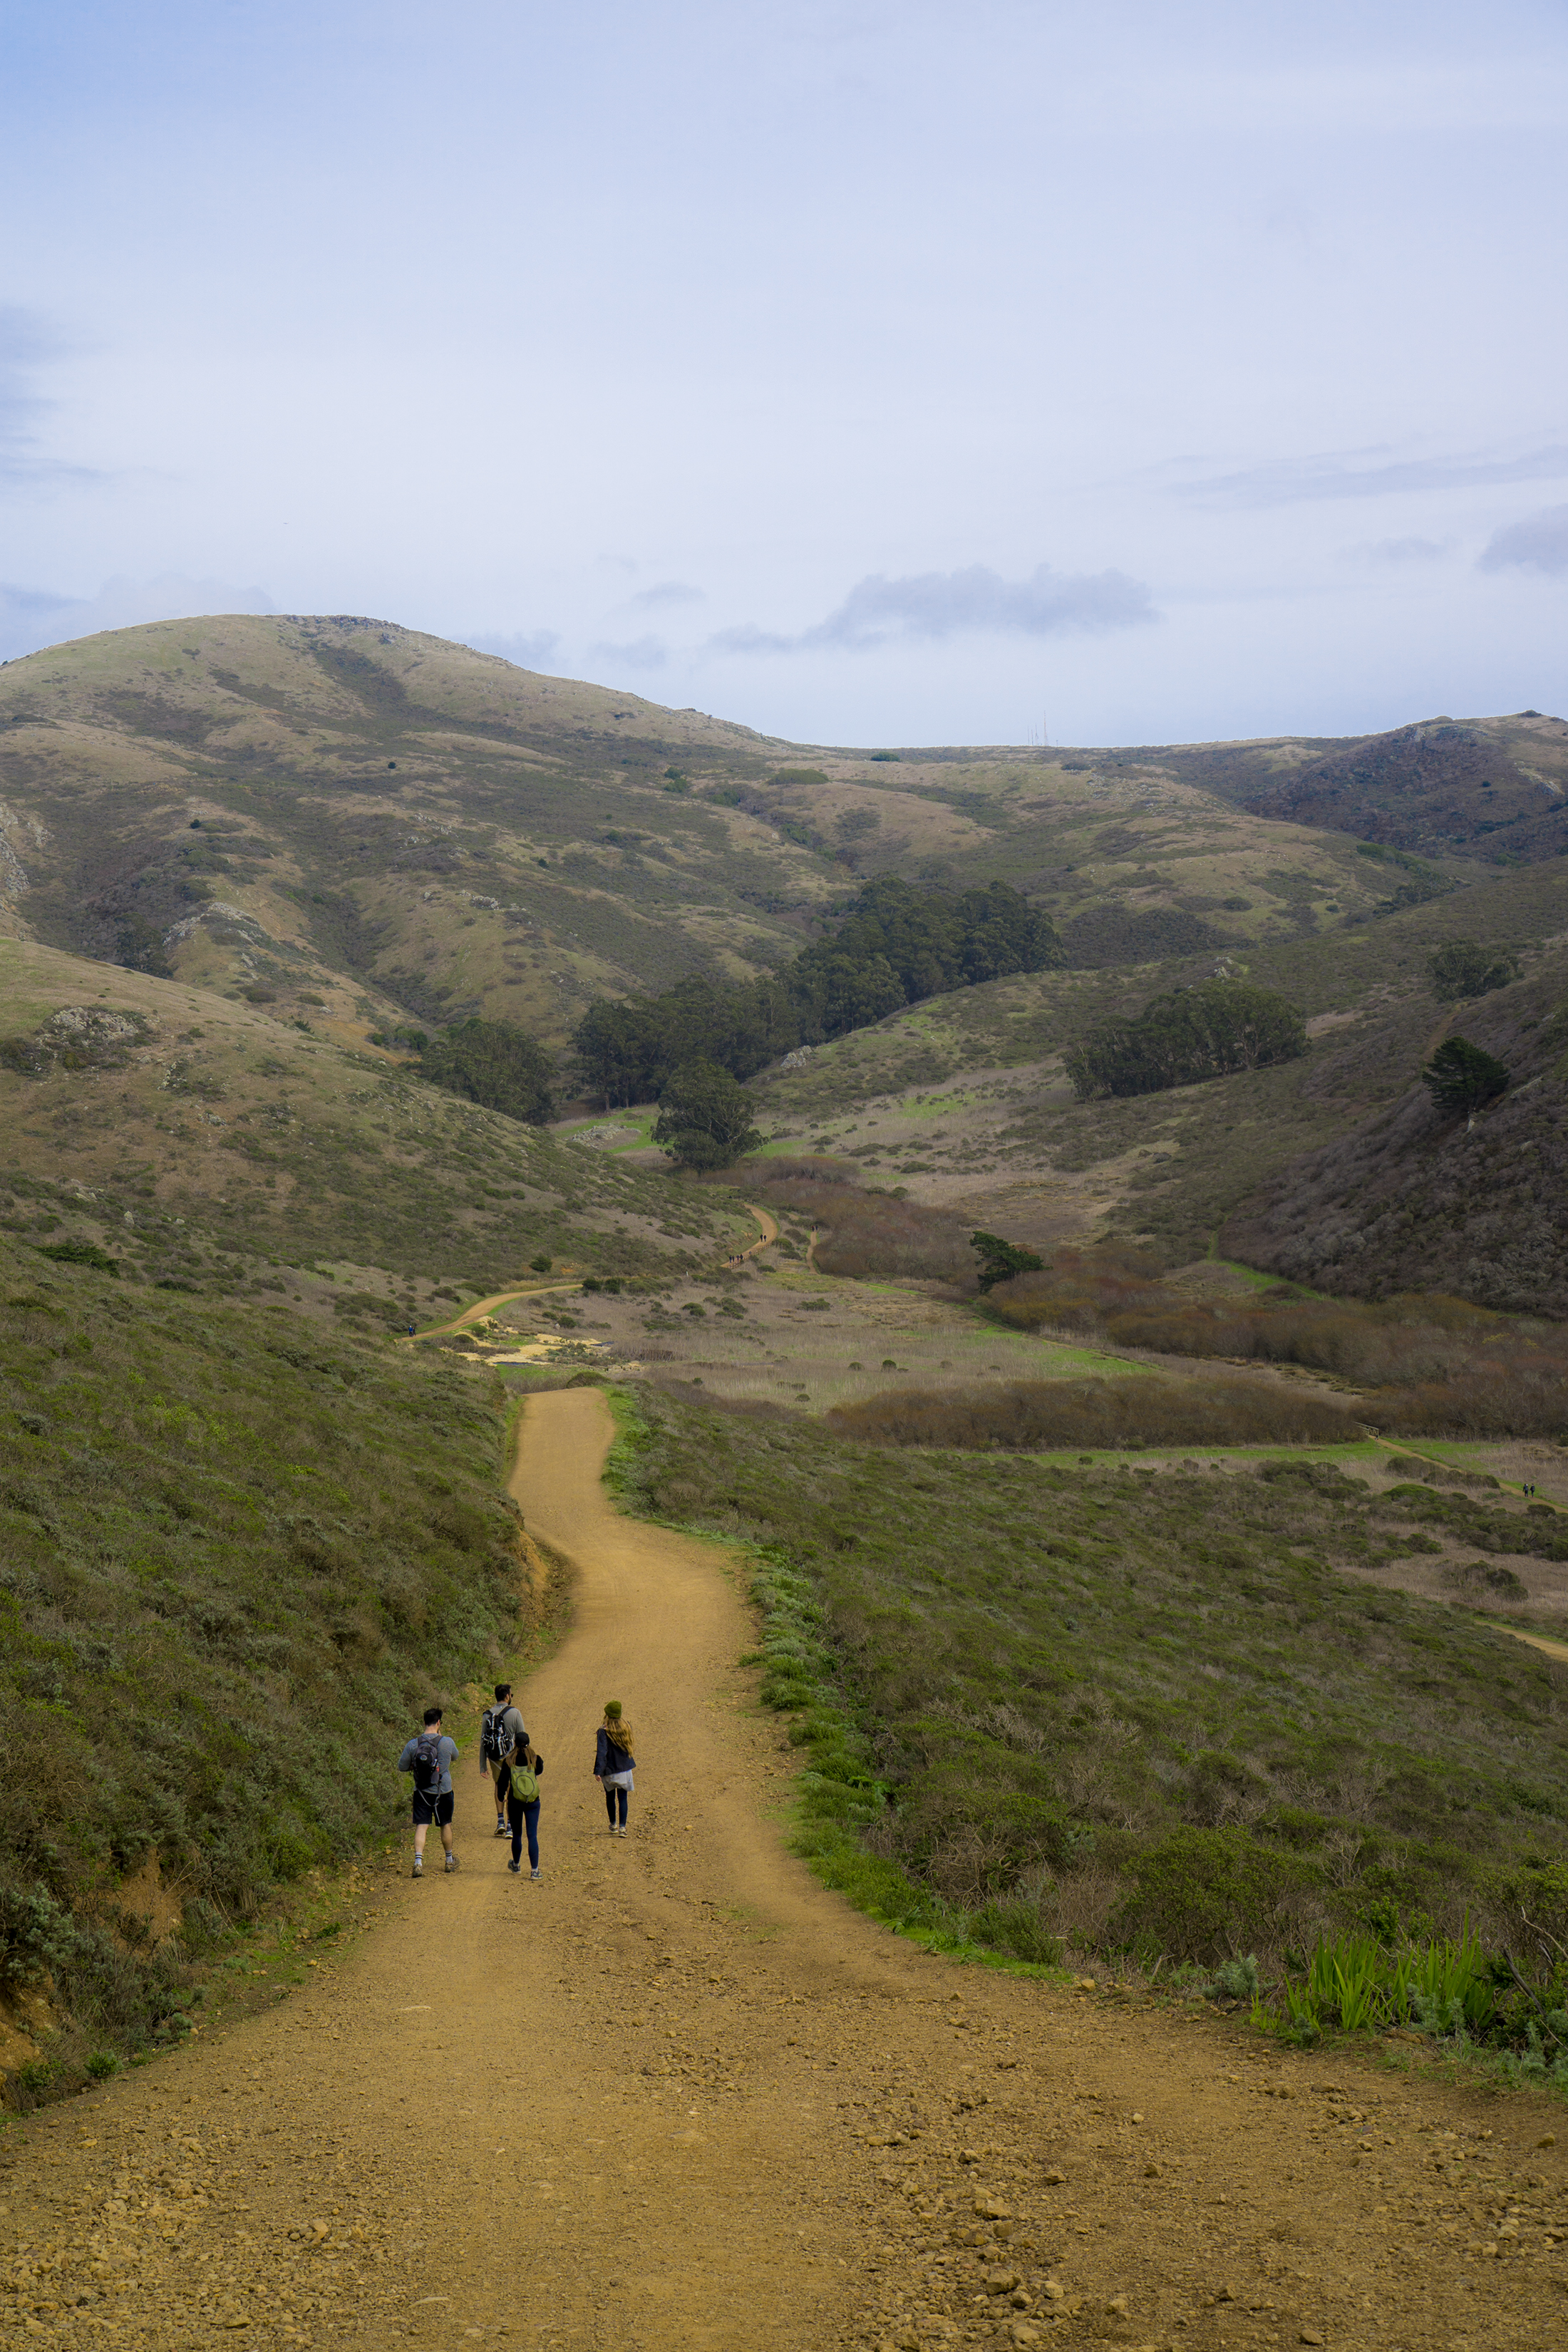 Group hiking Tennessee Valley Trail, Marin Headlands, Golden Gate National Recreation Area / Darker than Green